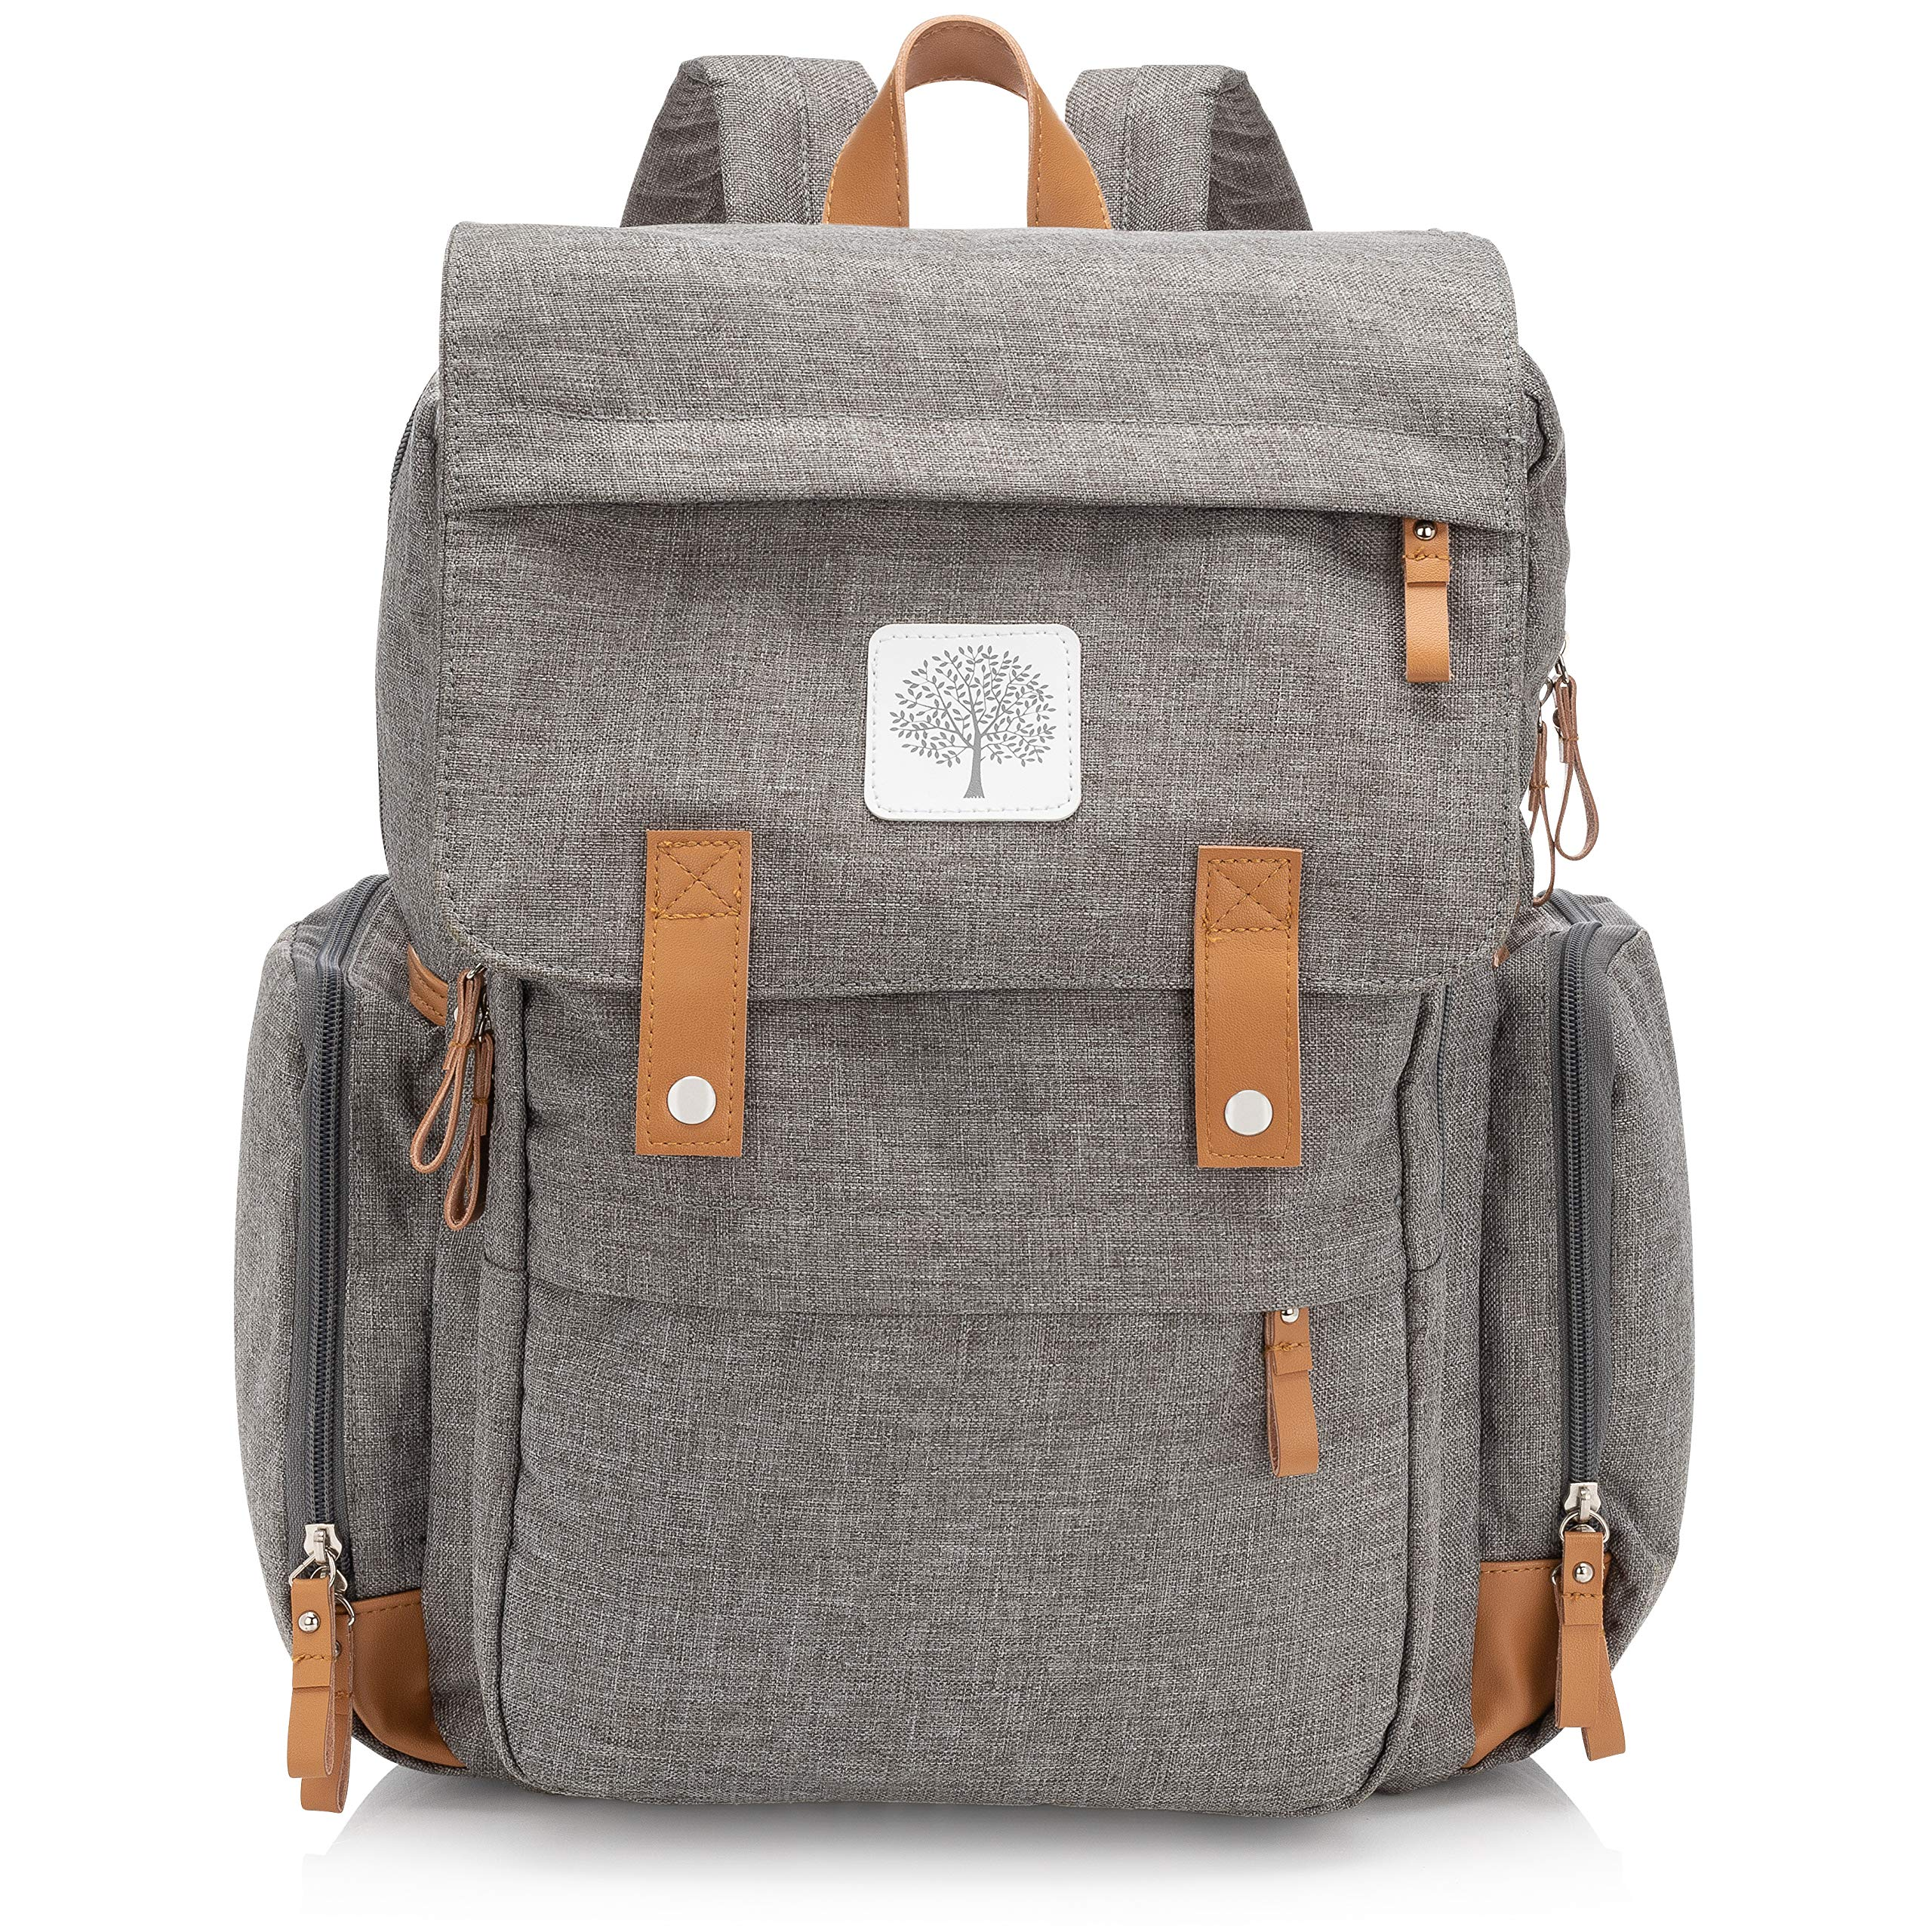 """Parker Baby Diaper Backpack - Large Diaper Bag with Insulated Pockets, Stroller Straps and Changing Pad -""""Birch Bag"""" - Gray"""